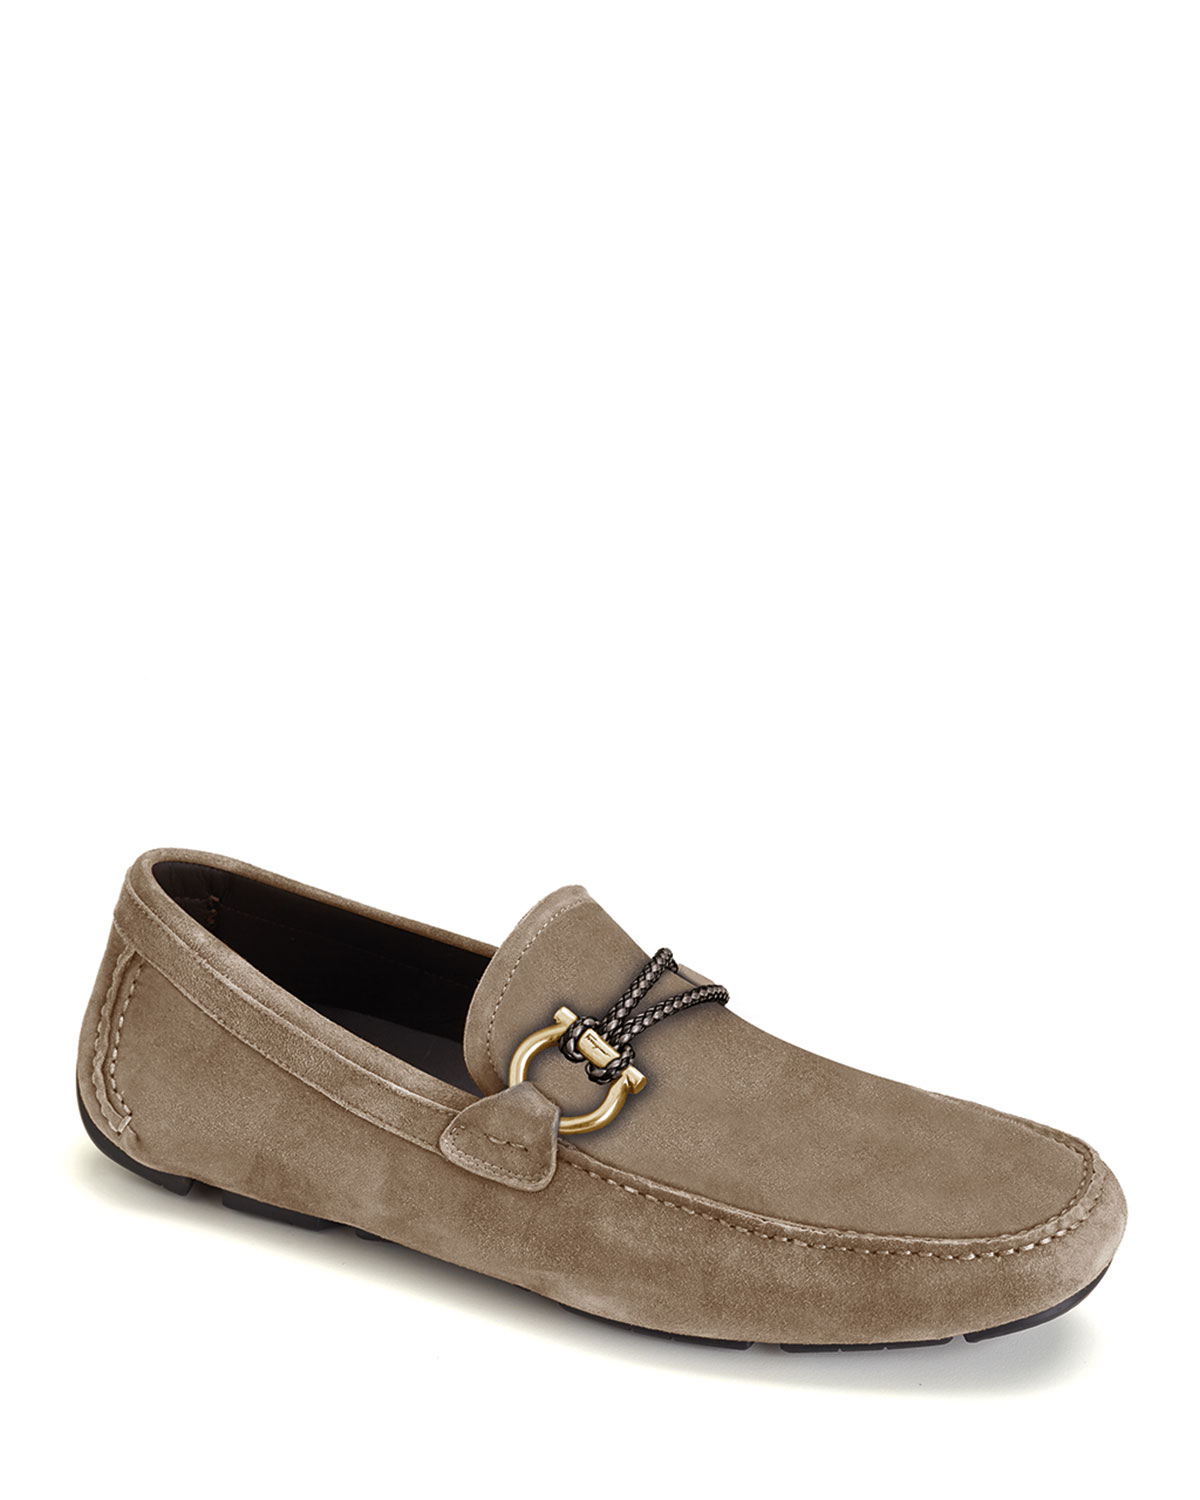 Salvatore Ferragamo Shoes MEN'S FRONT 4 SUEDE DRIVERS WITH BRAIDED DETAIL